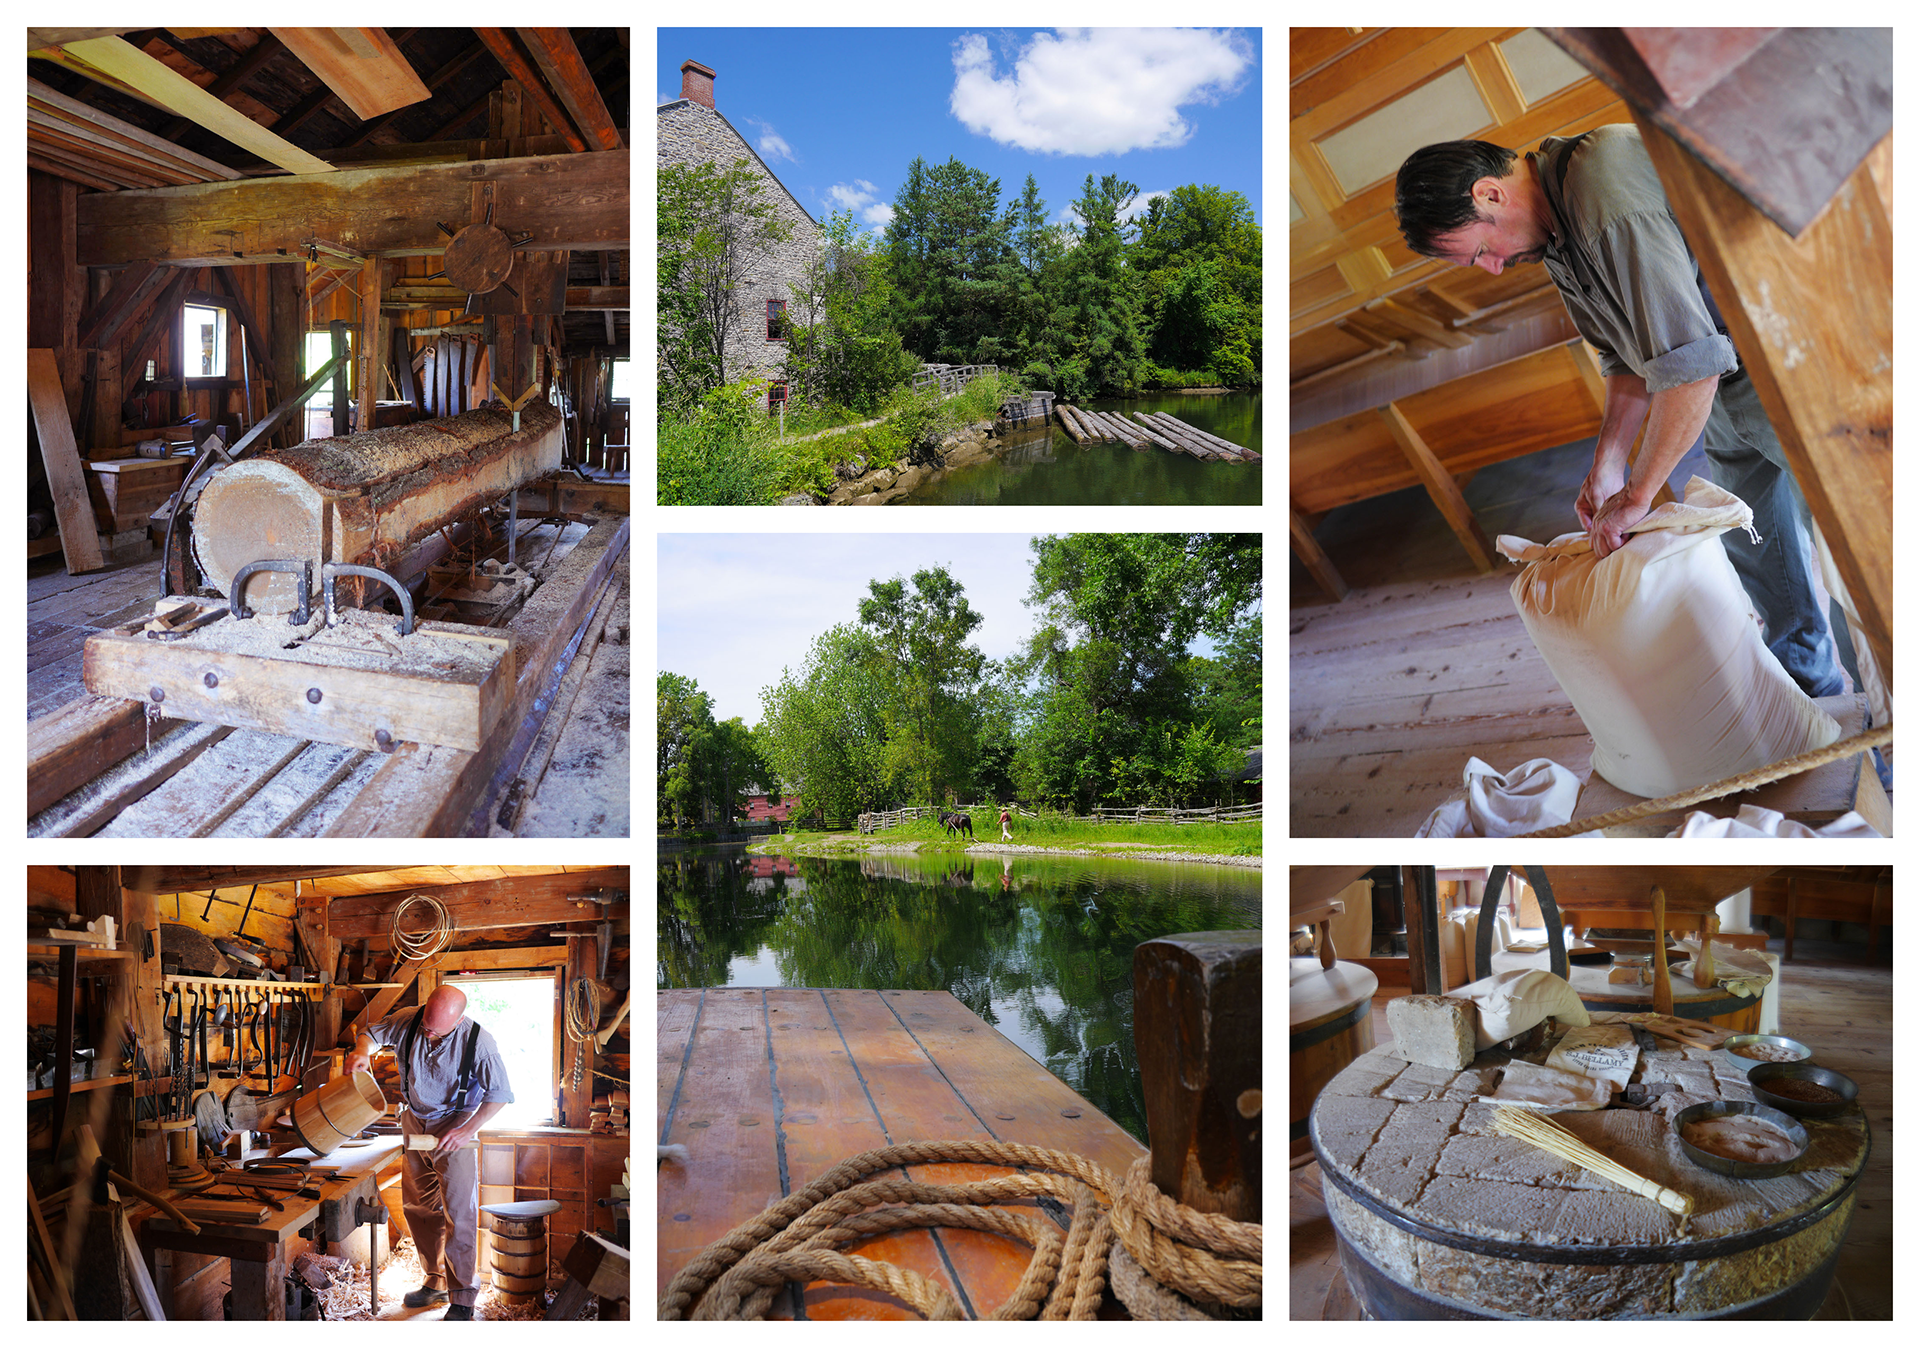 19-uppercanadavillage-working.png